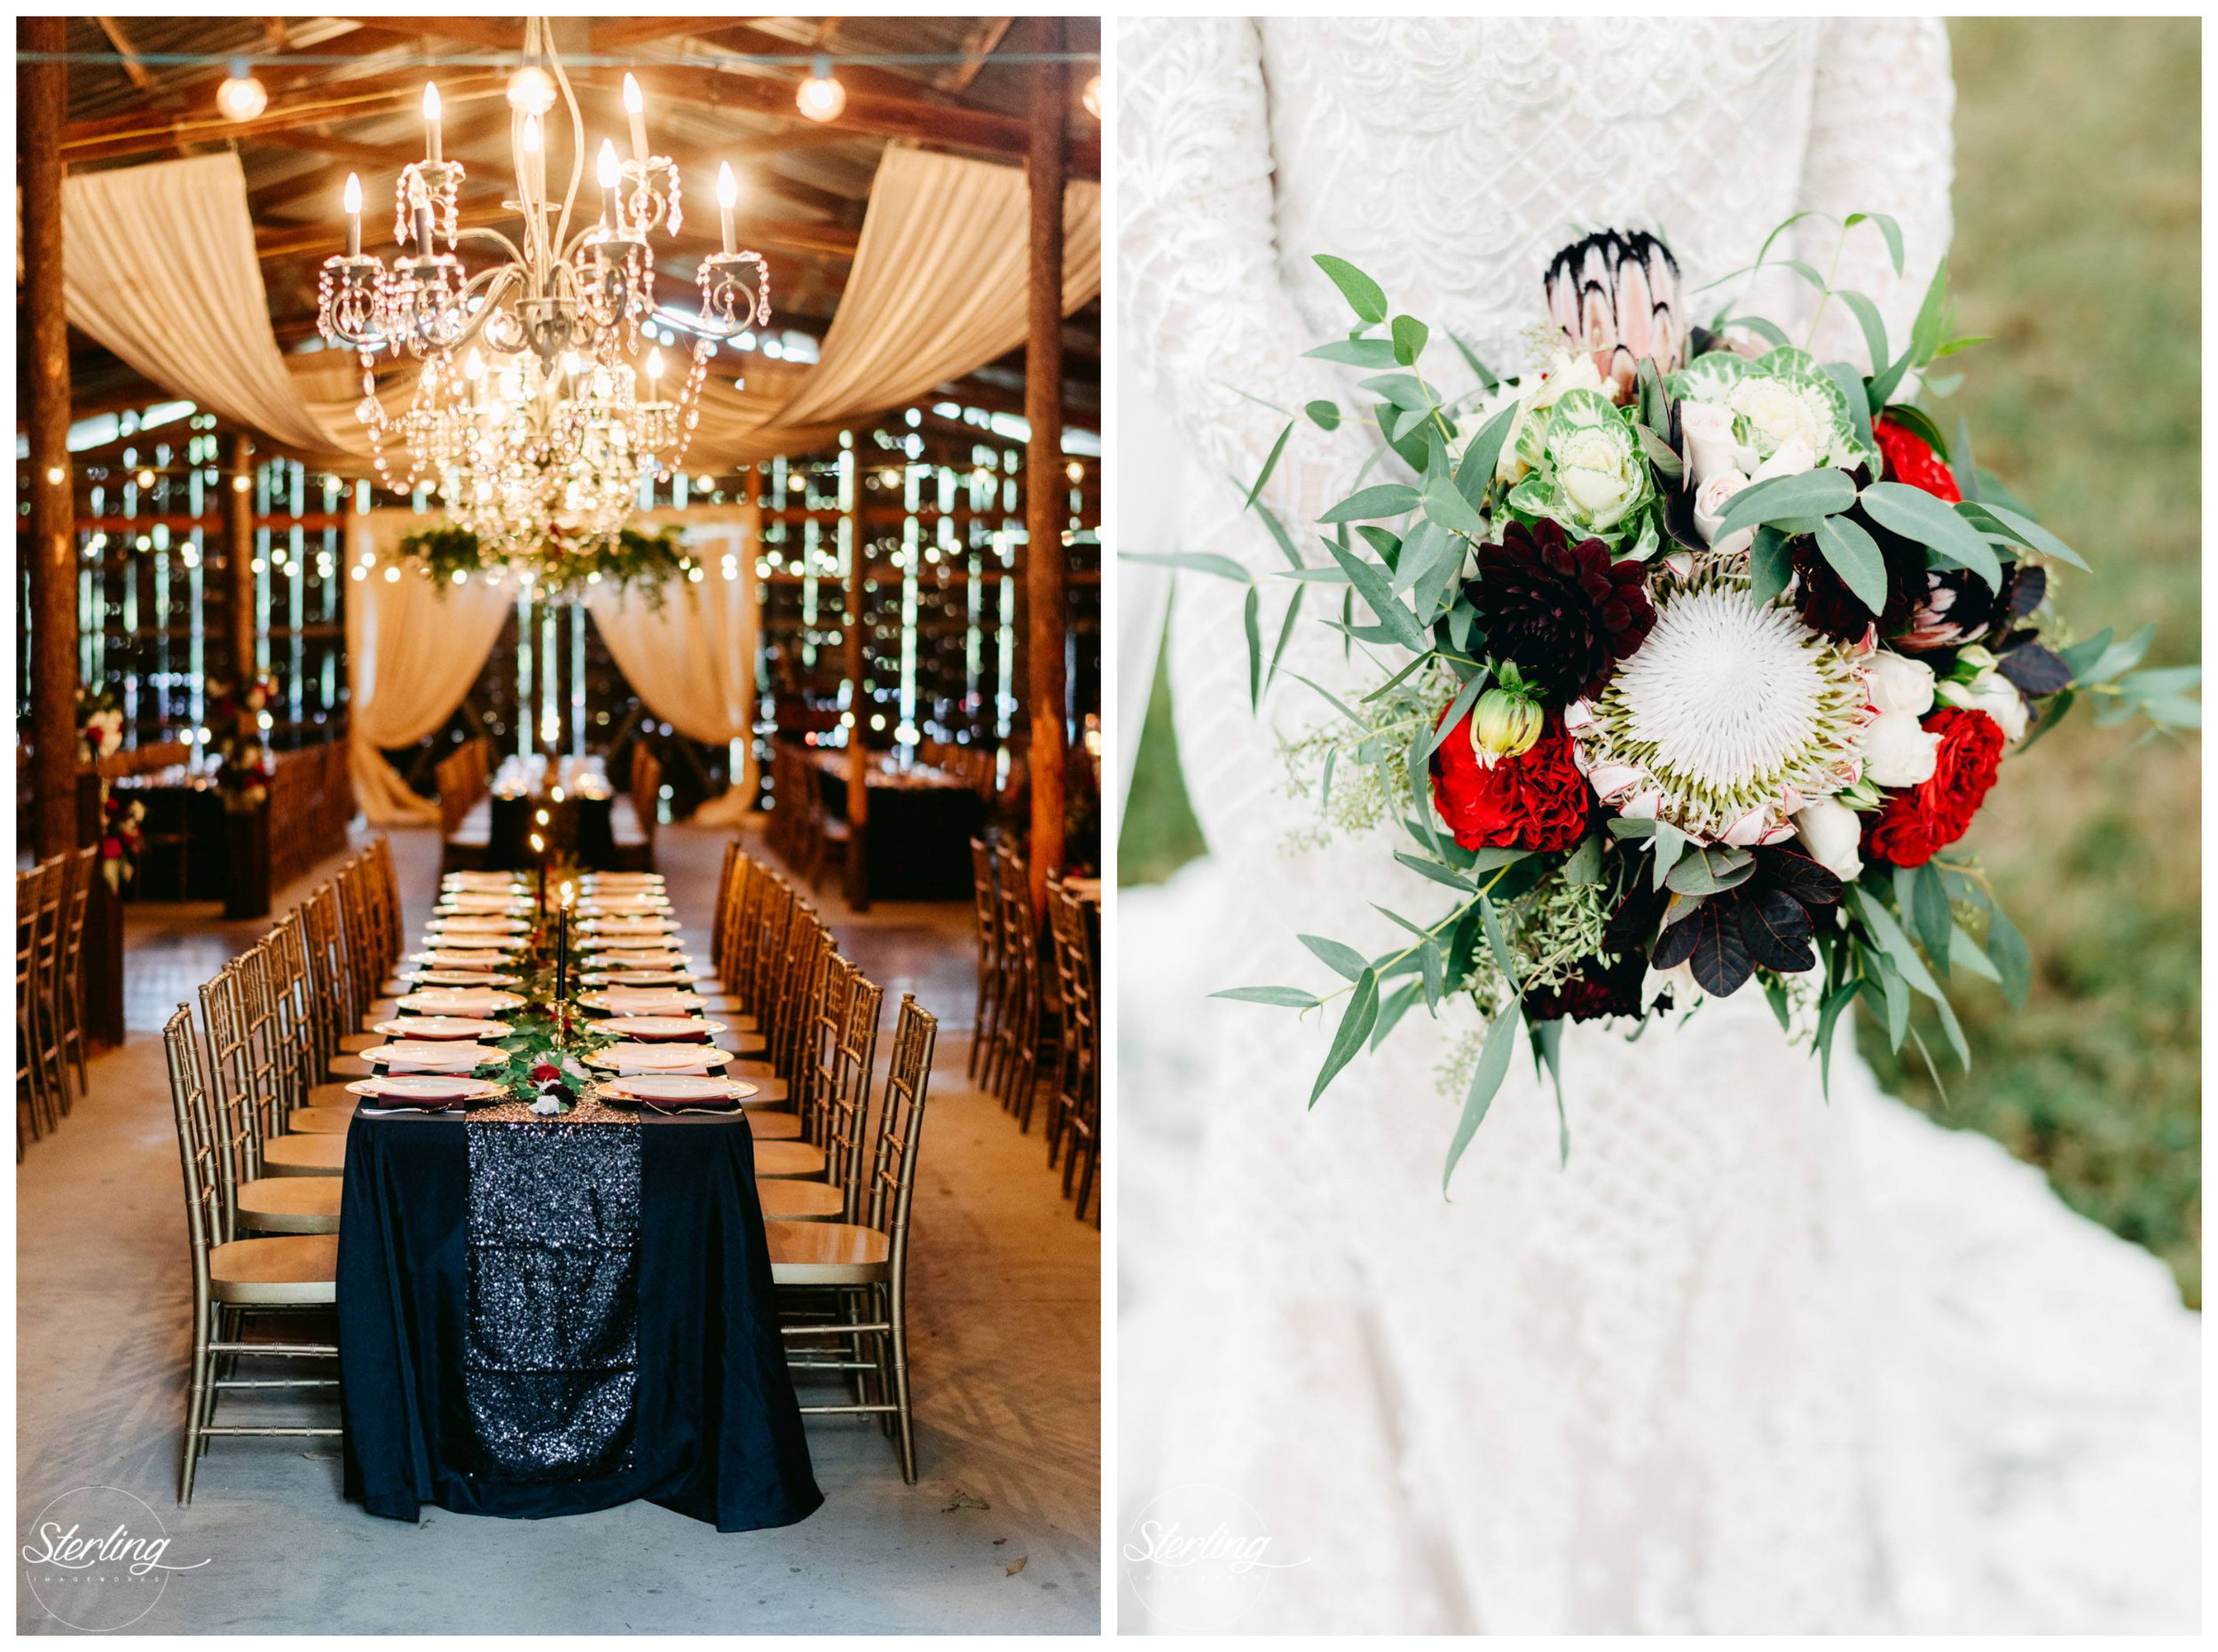 Sterling Imageworks Photography , from  Logan + Dusty 's wedding at The Barn